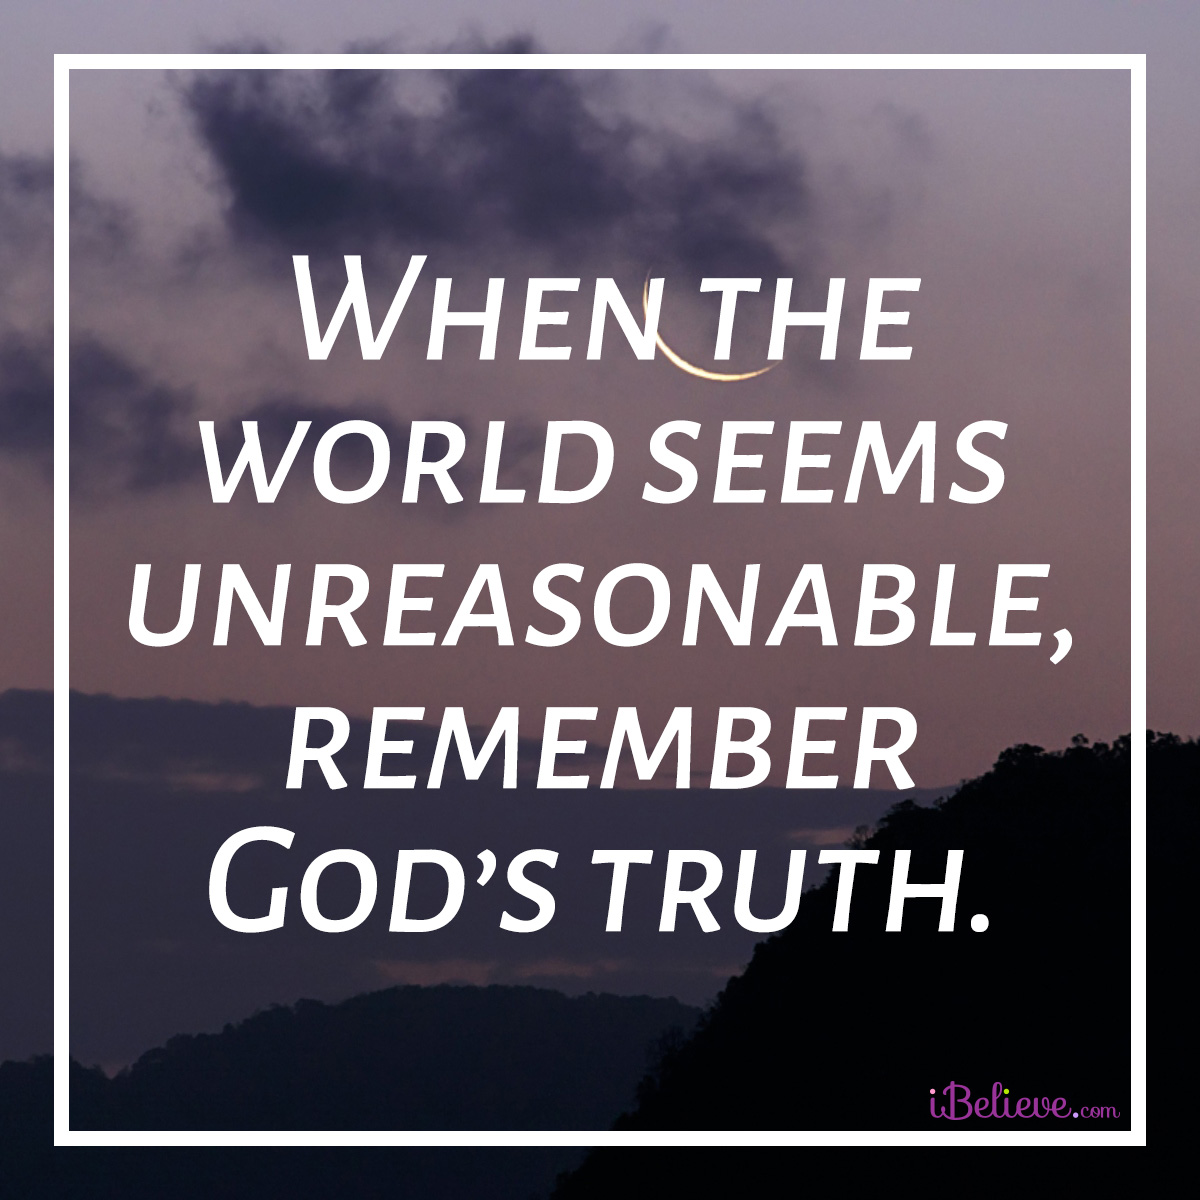 remember Gods truth inspirational image